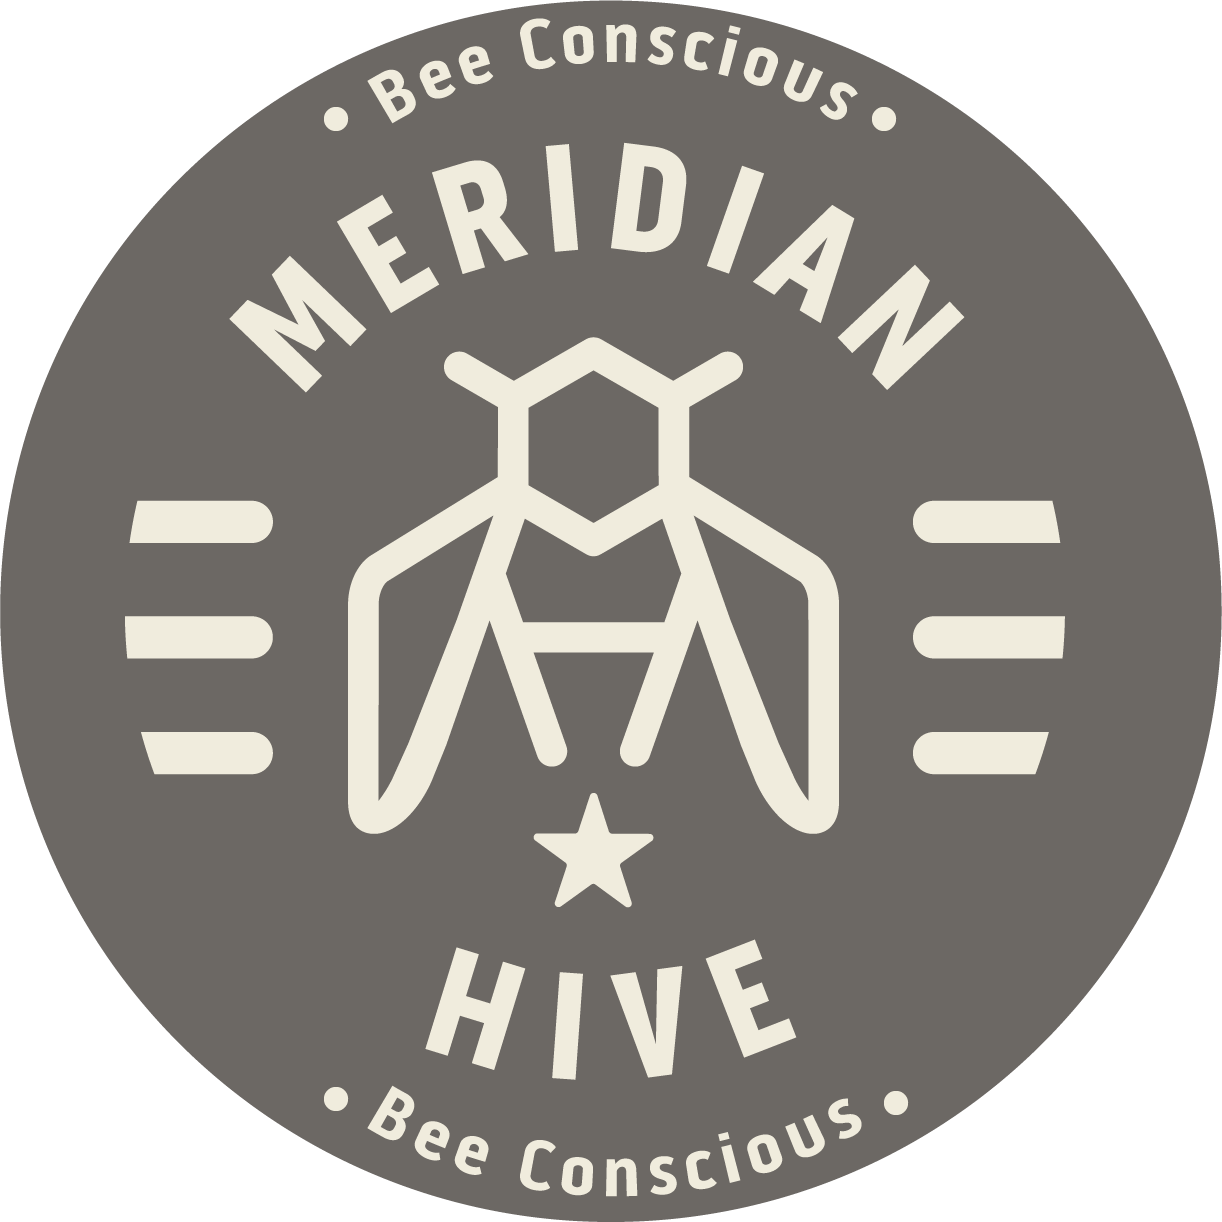 MH Bee Conscious@4x (1).png